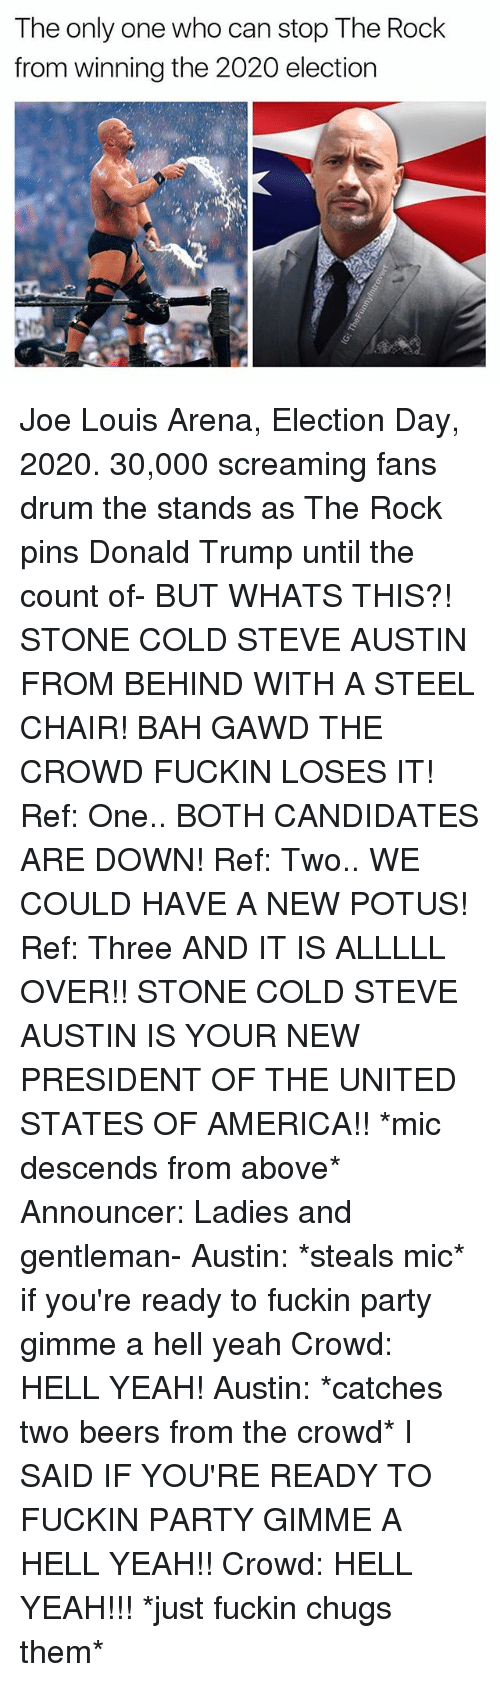 cold-steve-austin: The only one who can stop The Rock  from winning the 2020 election Joe Louis Arena, Election Day, 2020. 30,000 screaming fans drum the stands as The Rock pins Donald Trump until the count of- BUT WHATS THIS?! STONE COLD STEVE AUSTIN FROM BEHIND WITH A STEEL CHAIR! BAH GAWD THE CROWD FUCKIN LOSES IT! Ref: One.. BOTH CANDIDATES ARE DOWN! Ref: Two.. WE COULD HAVE A NEW POTUS! Ref: Three AND IT IS ALLLLL OVER!! STONE COLD STEVE AUSTIN IS YOUR NEW PRESIDENT OF THE UNITED STATES OF AMERICA!! *mic descends from above* Announcer: Ladies and gentleman- Austin: *steals mic* if you're ready to fuckin party gimme a hell yeah Crowd: HELL YEAH! Austin: *catches two beers from the crowd* I SAID IF YOU'RE READY TO FUCKIN PARTY GIMME A HELL YEAH!! Crowd: HELL YEAH!!! *just fuckin chugs them*